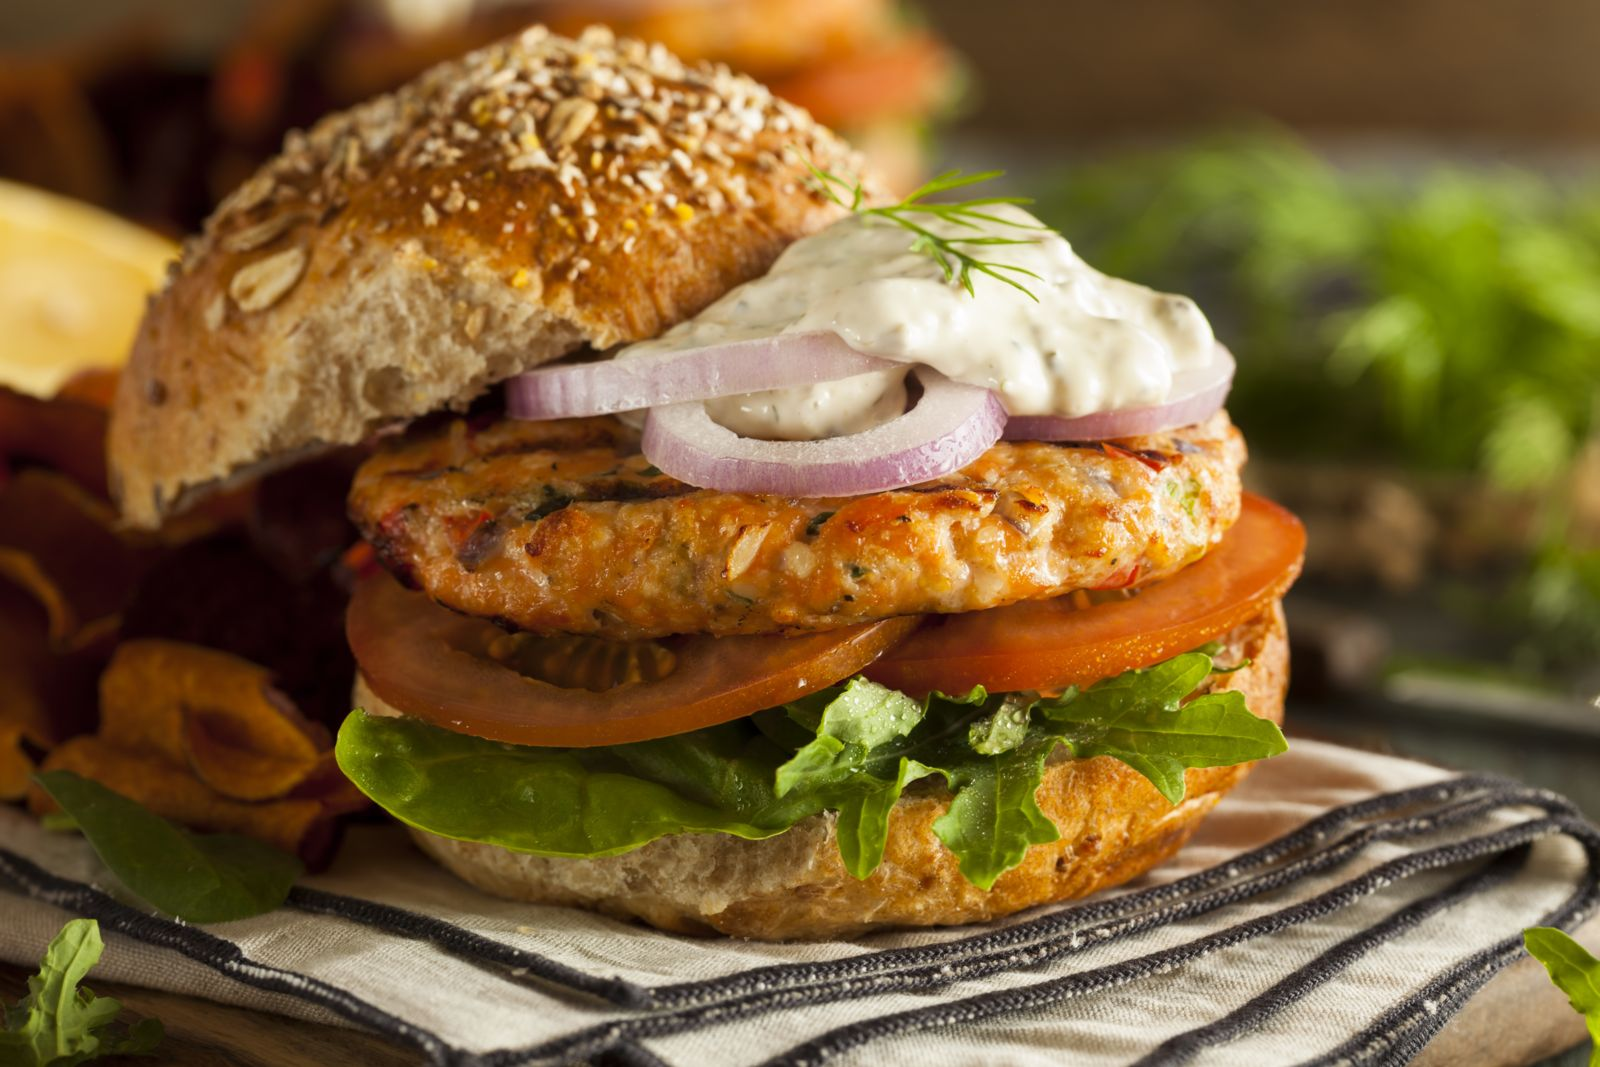 This diabetic-friendly burger can stand up to any other on National Hamburger Day!